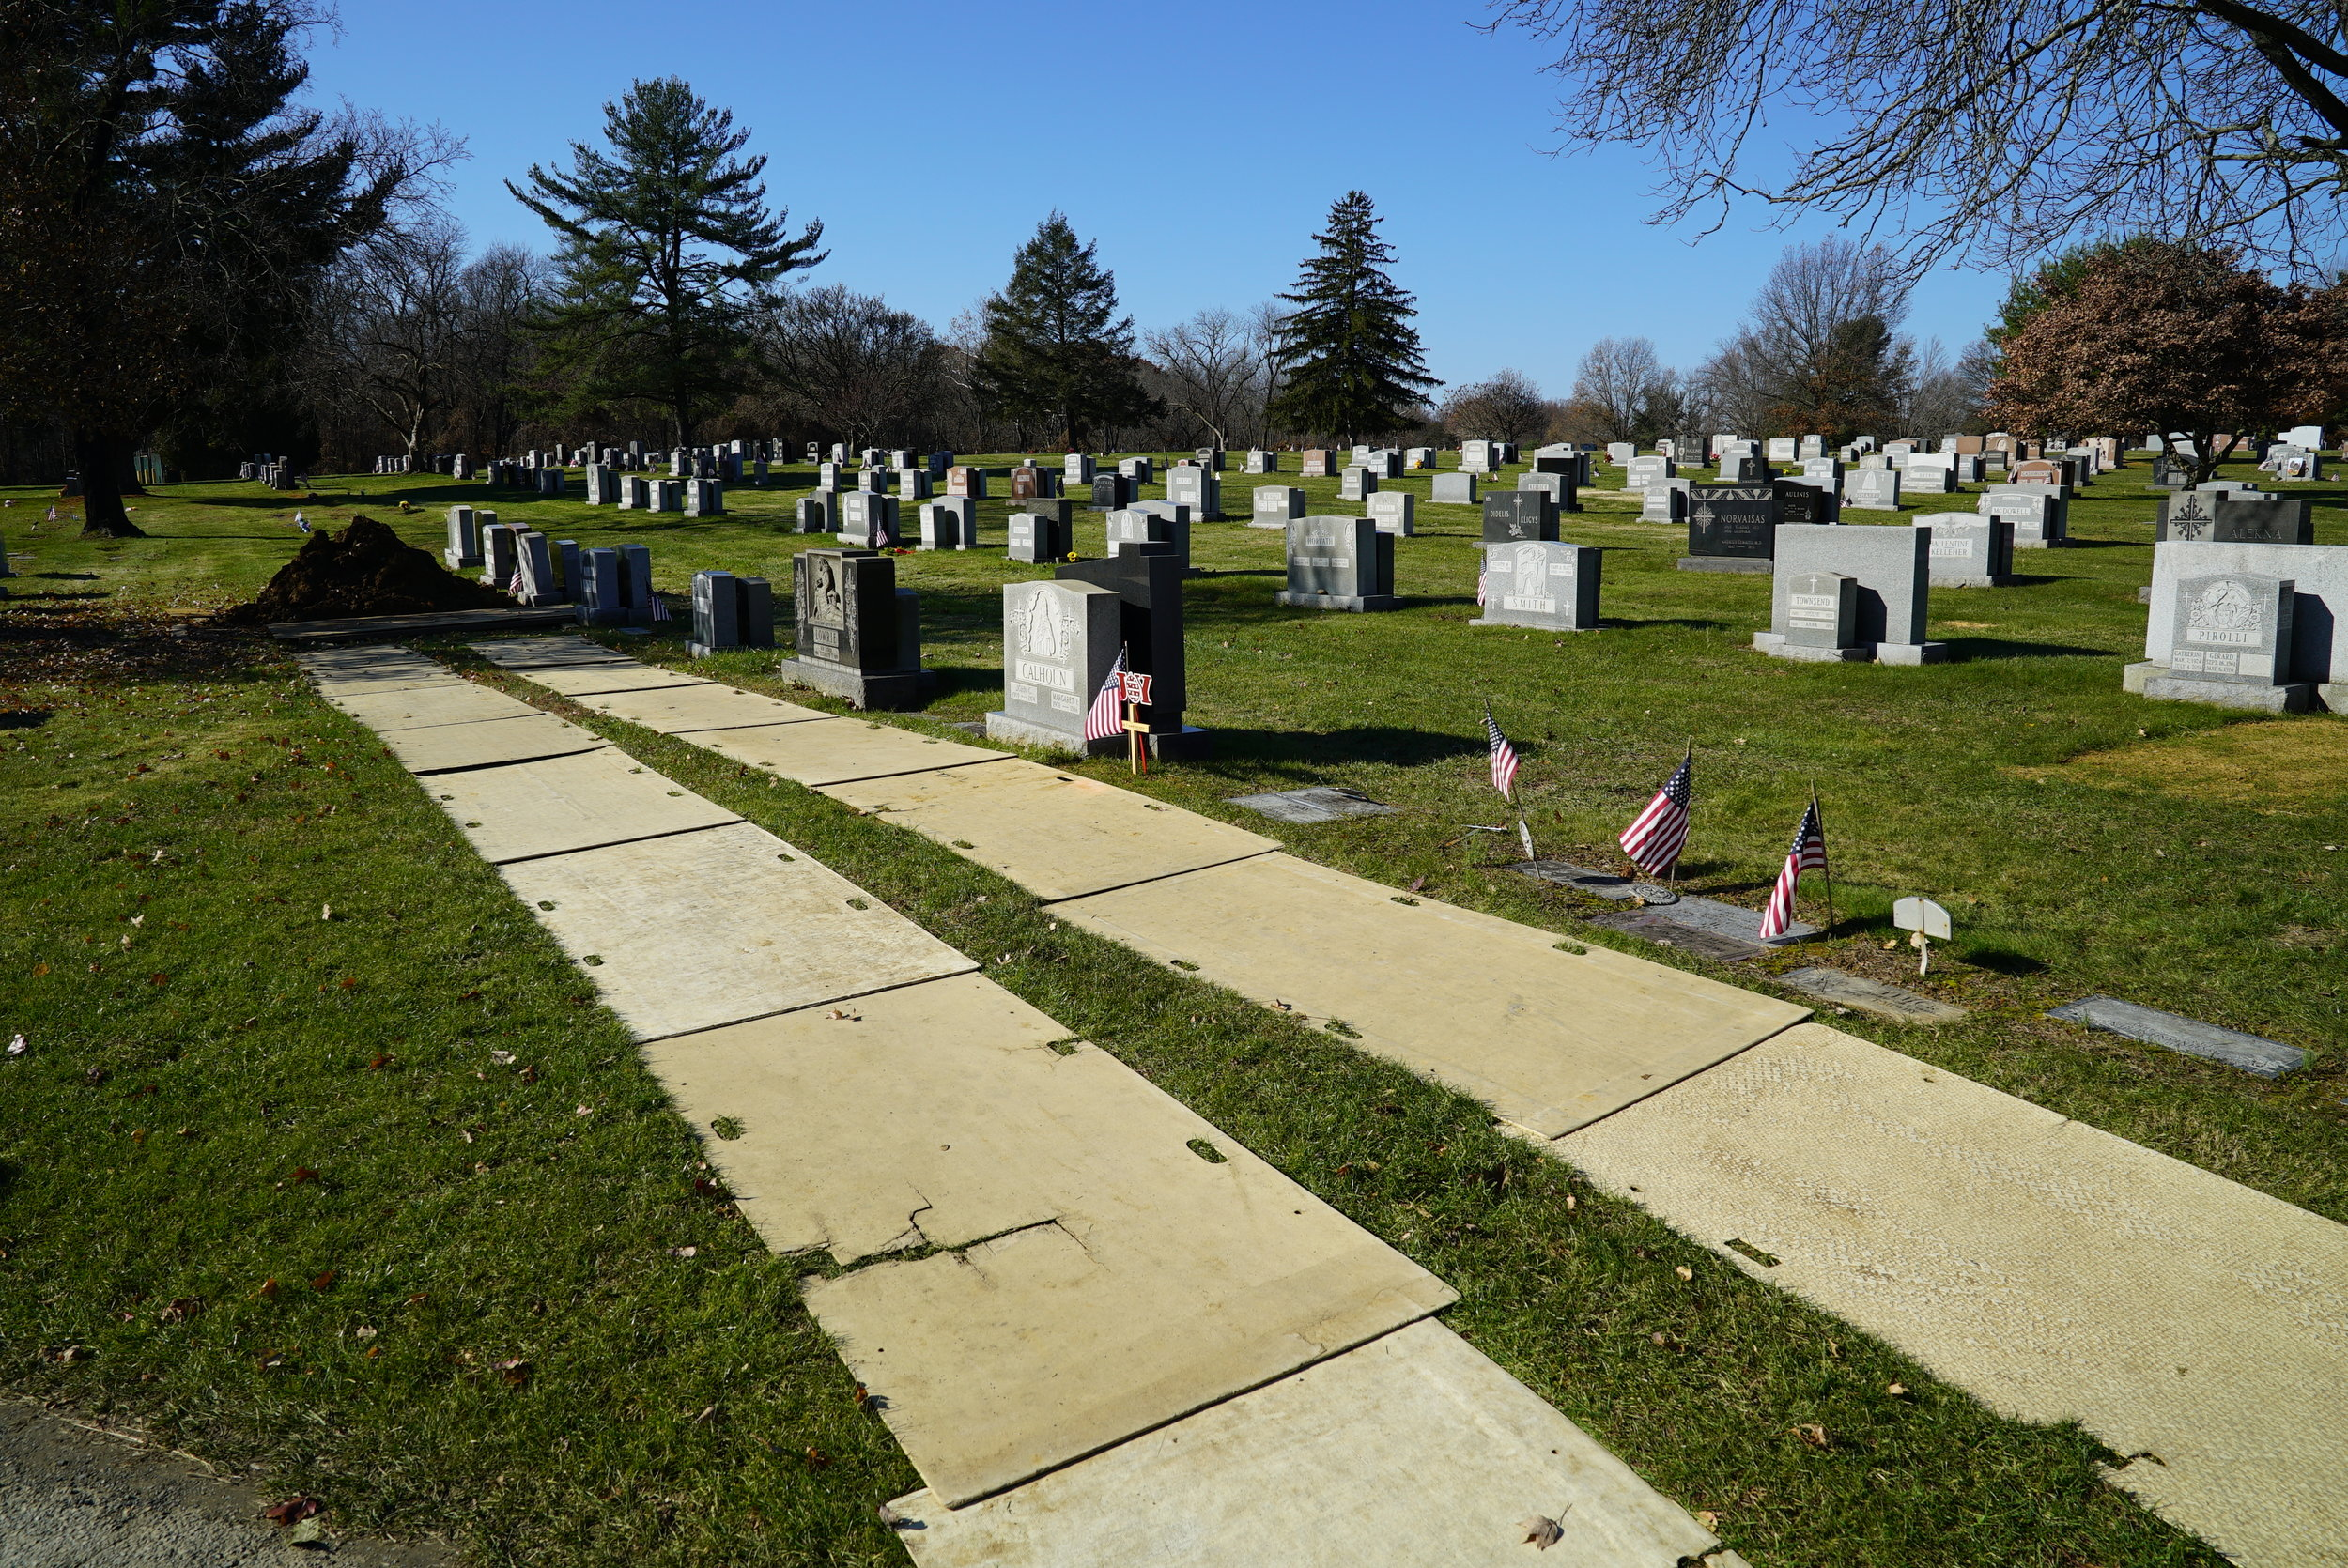 Boards protect the grass when trucks or tactors need access to a grave.